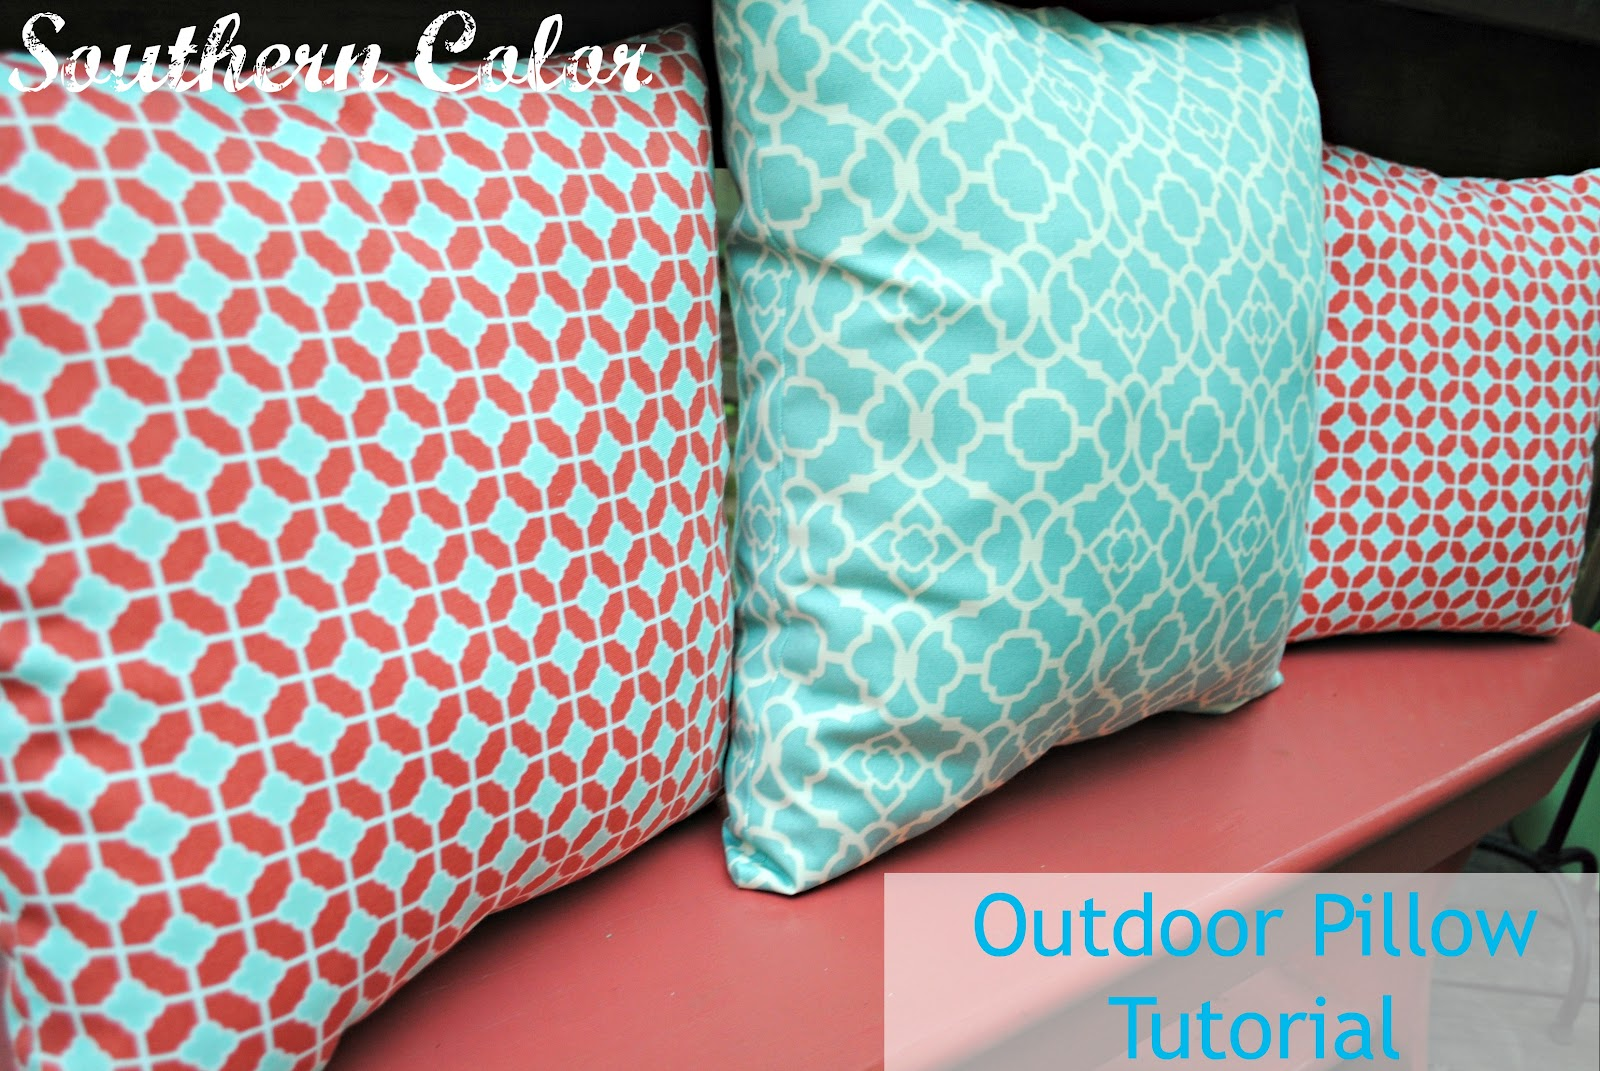 Southern Color Outdoor Pillow Tutorial